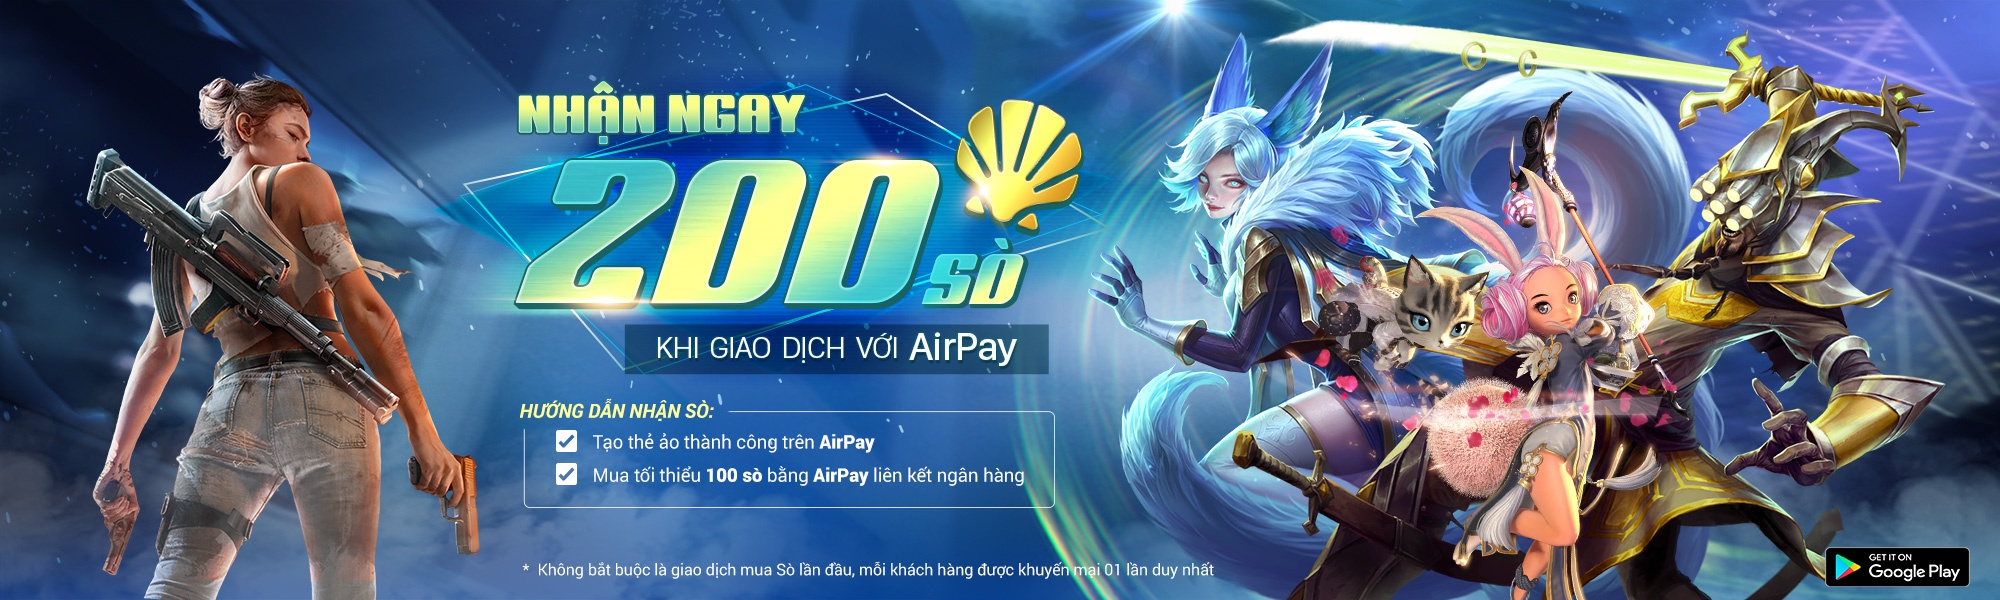 nhan-them-200-so-khi-giao-dich-cung-airpay